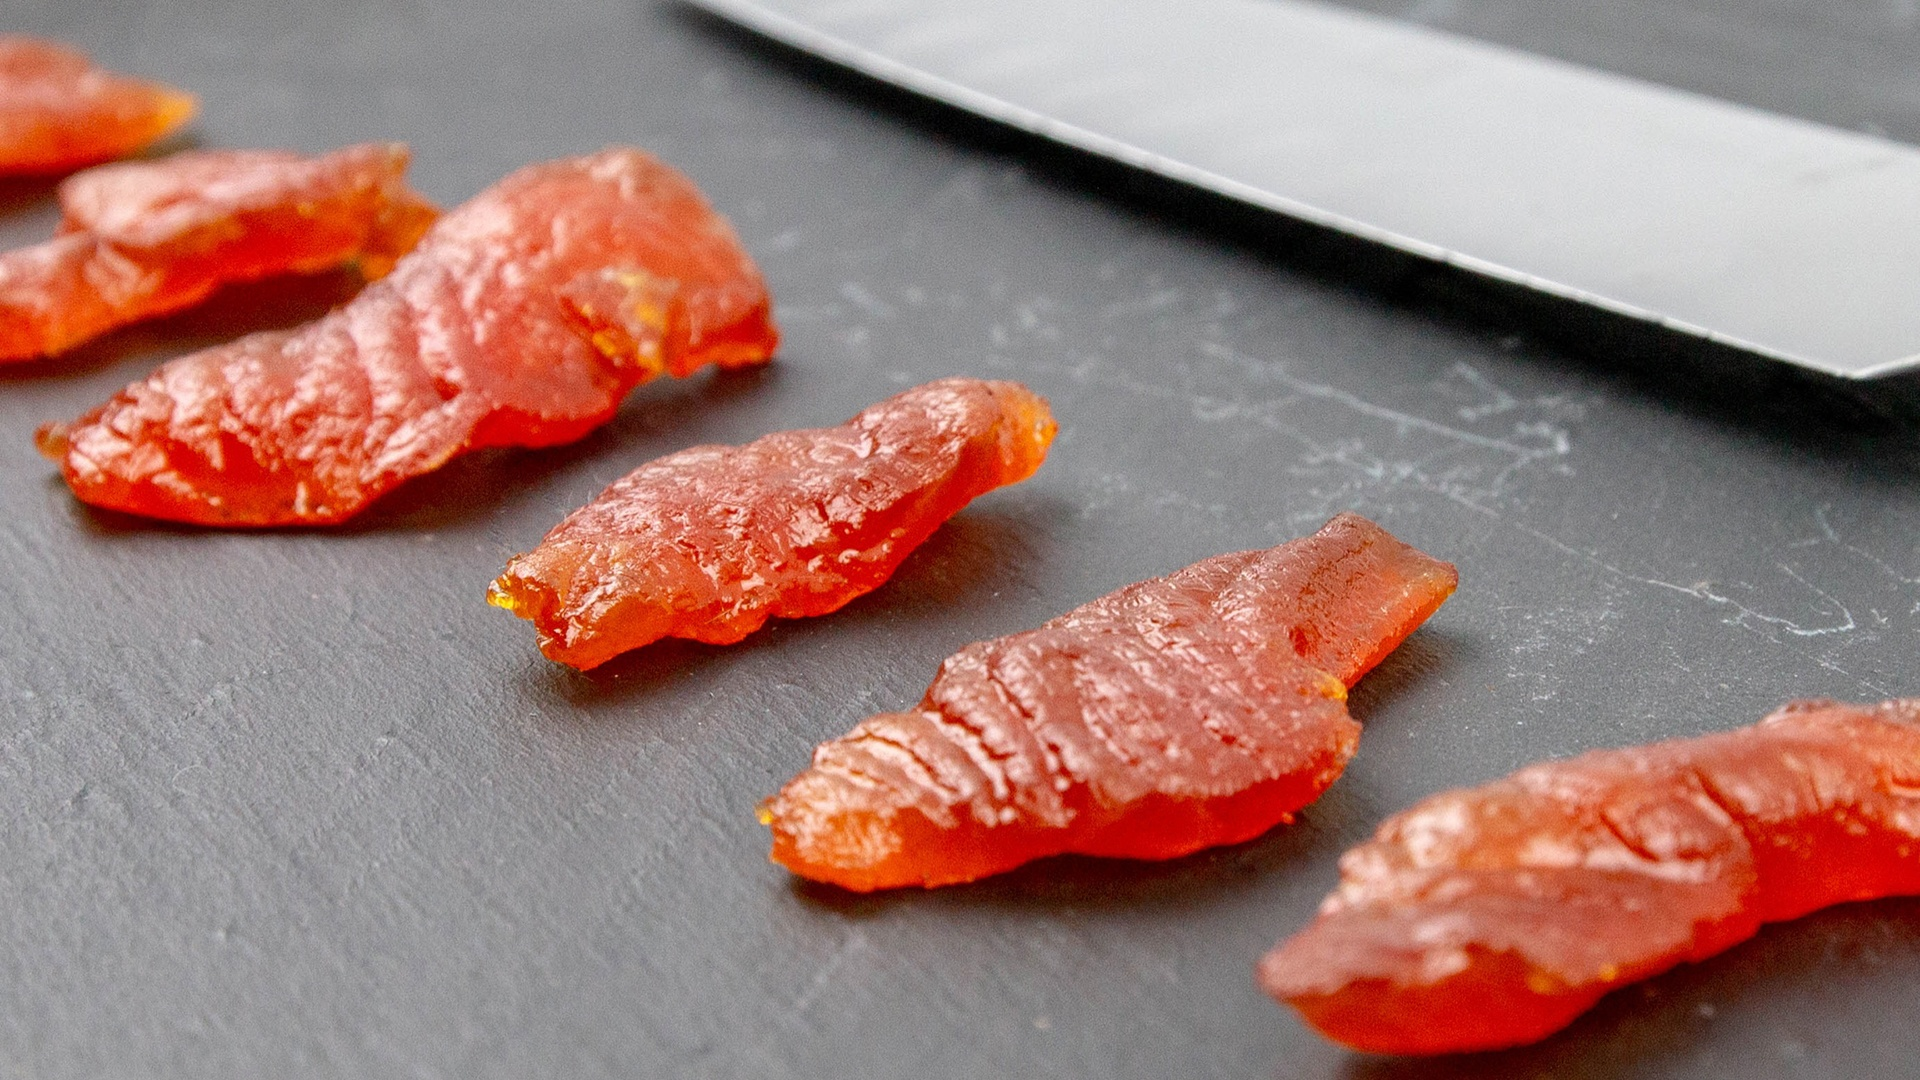 The Can-D Food Co.'s candied smoked salmon